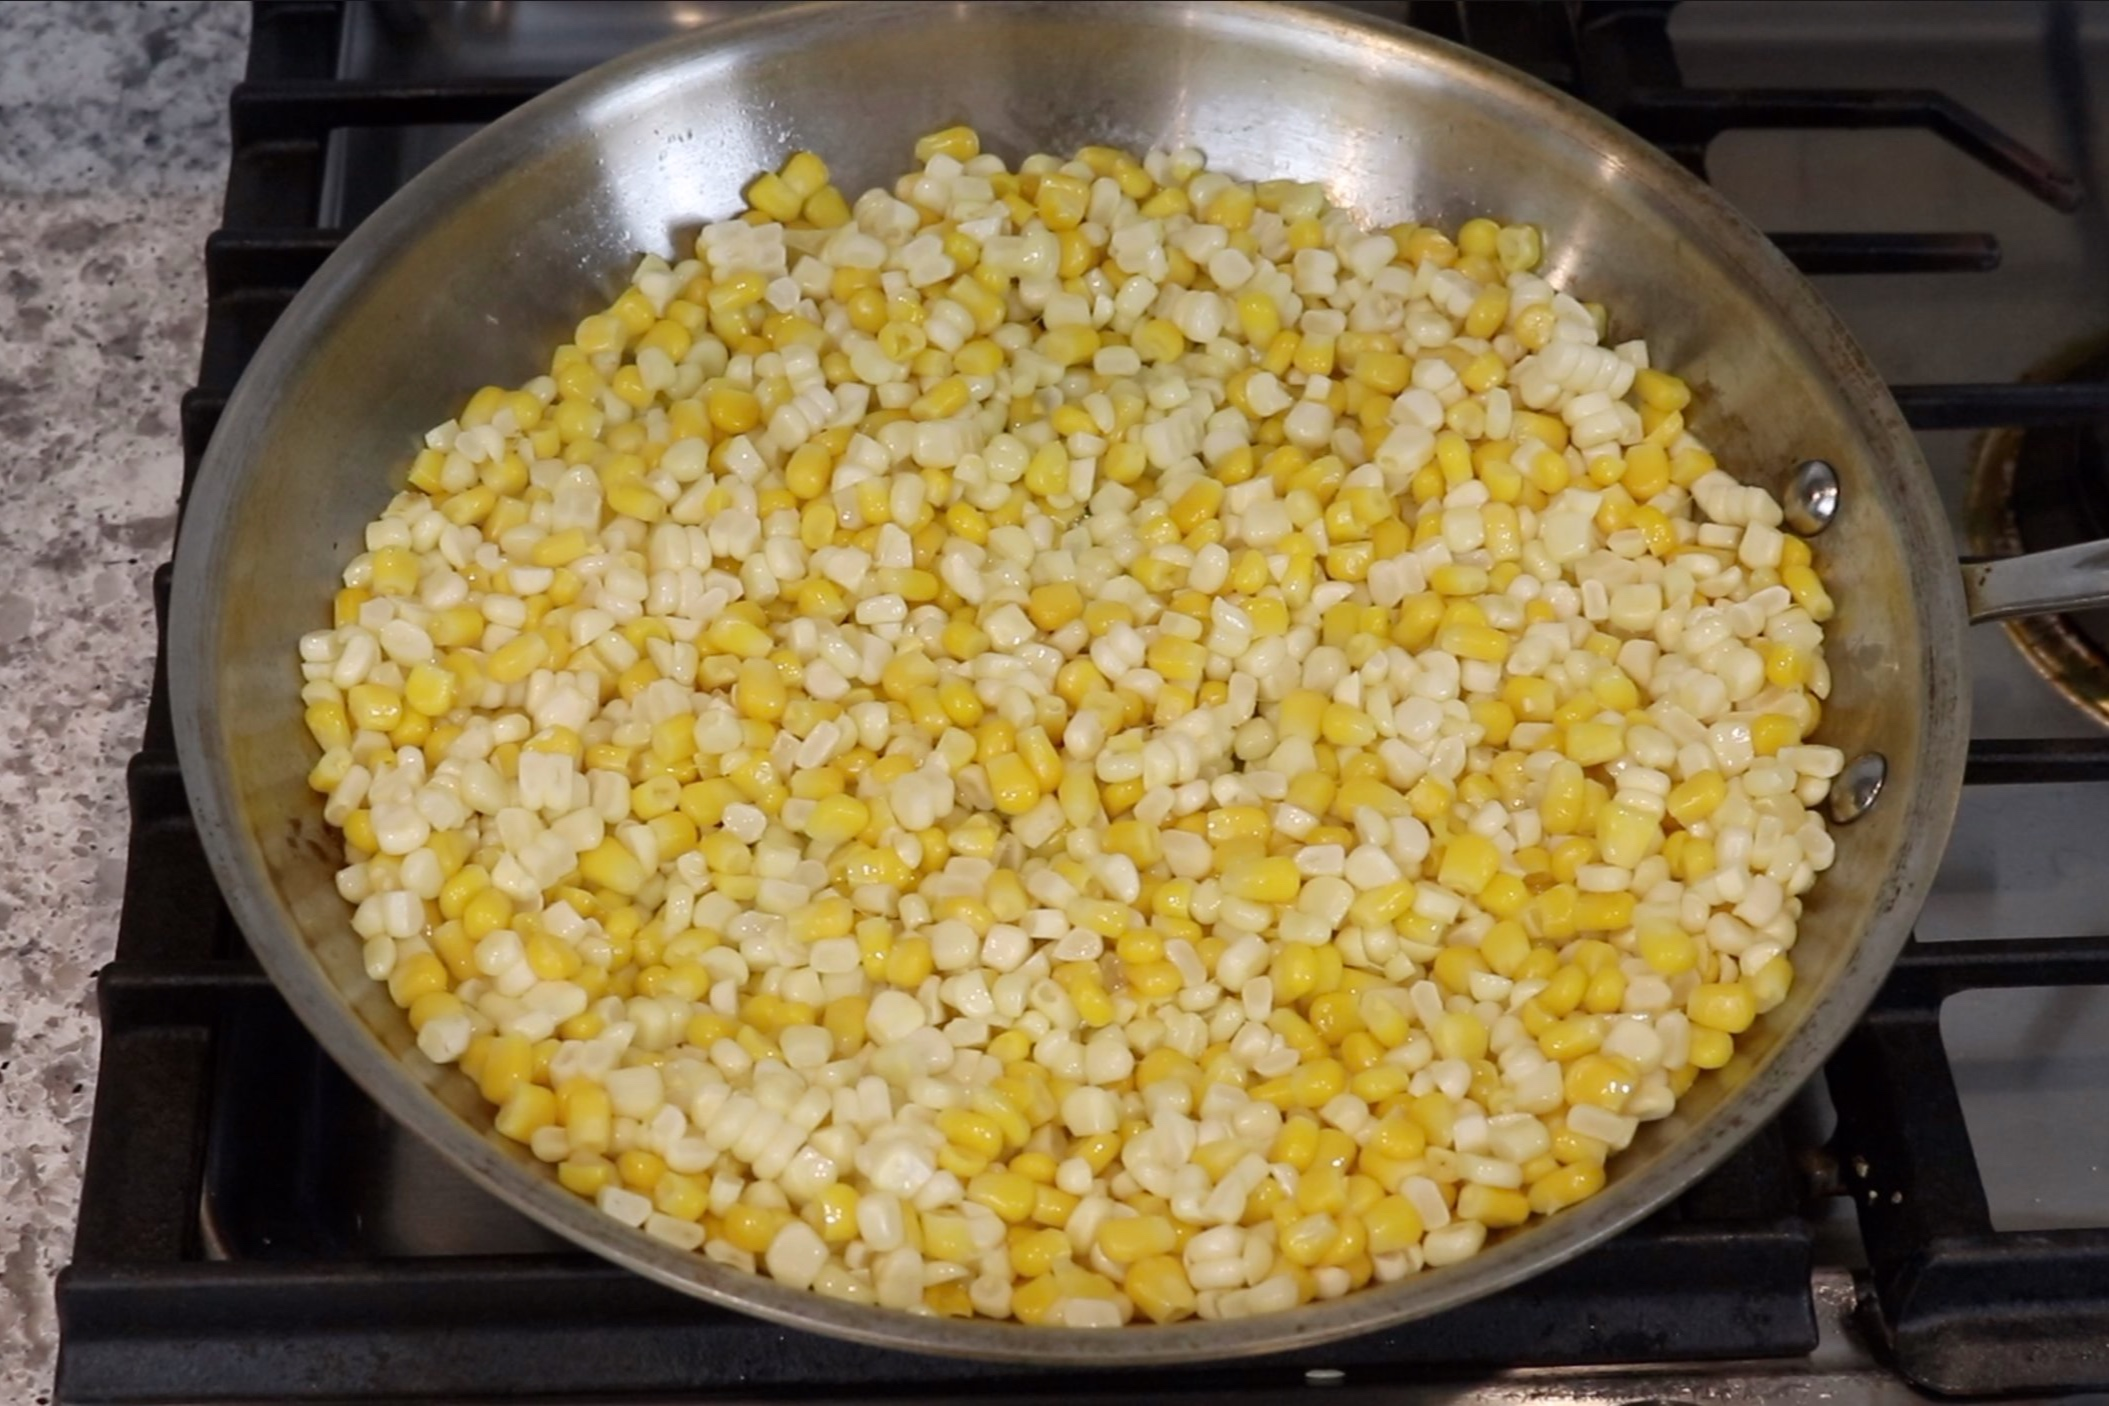 2. Add olive oil and corn to a large skillet and heat over medium-high for 10 minutes. -